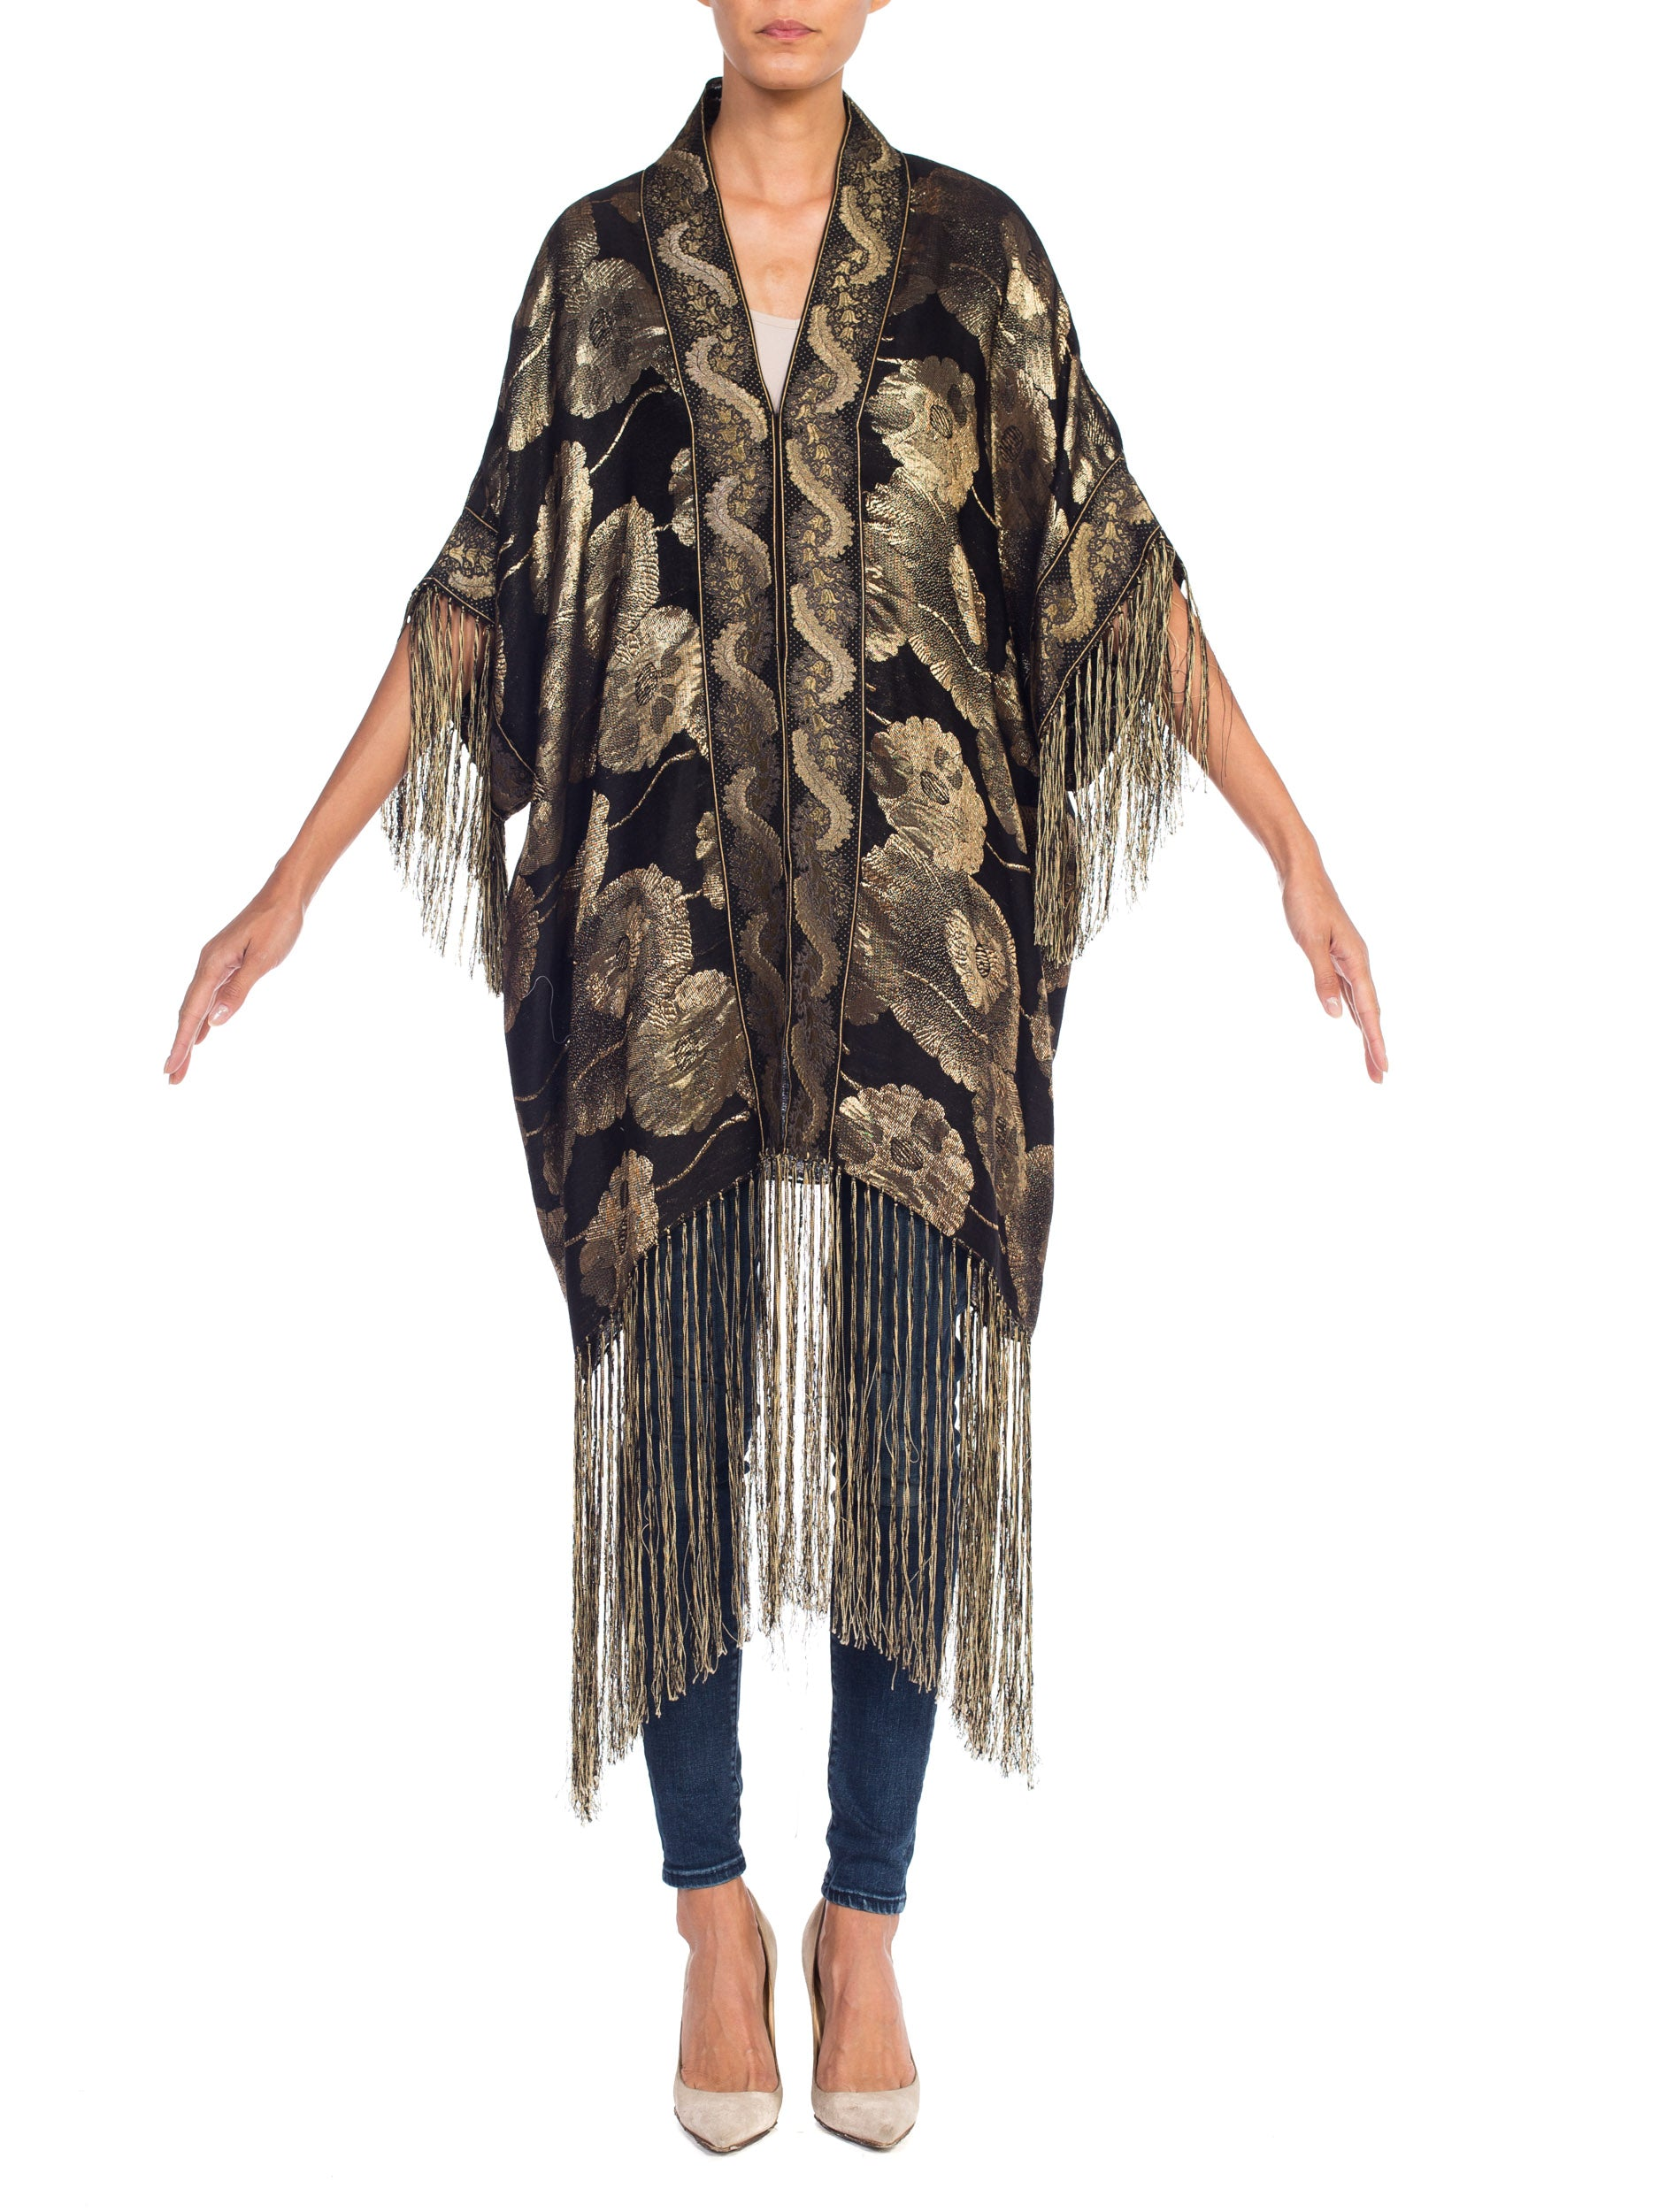 Morphew Collection Floral Gold Lamé Kimono With Antique Trim & Silk Fringe